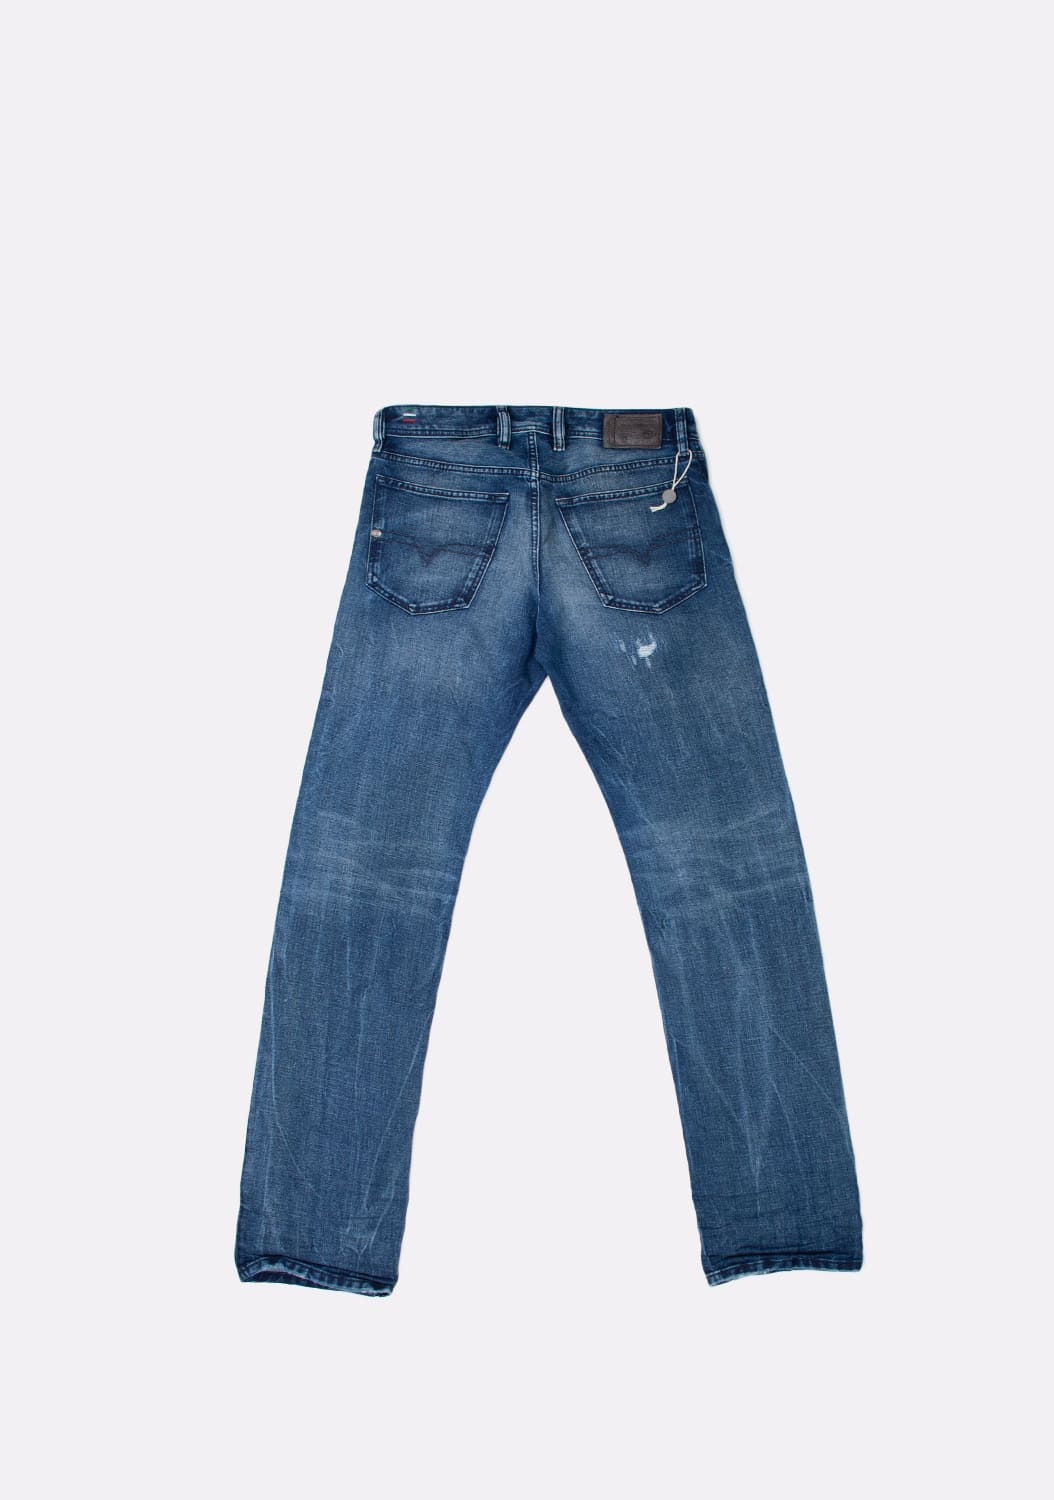 Diesel-Waykee-0839E-Regular-Straight-dydis-30-34 (5)